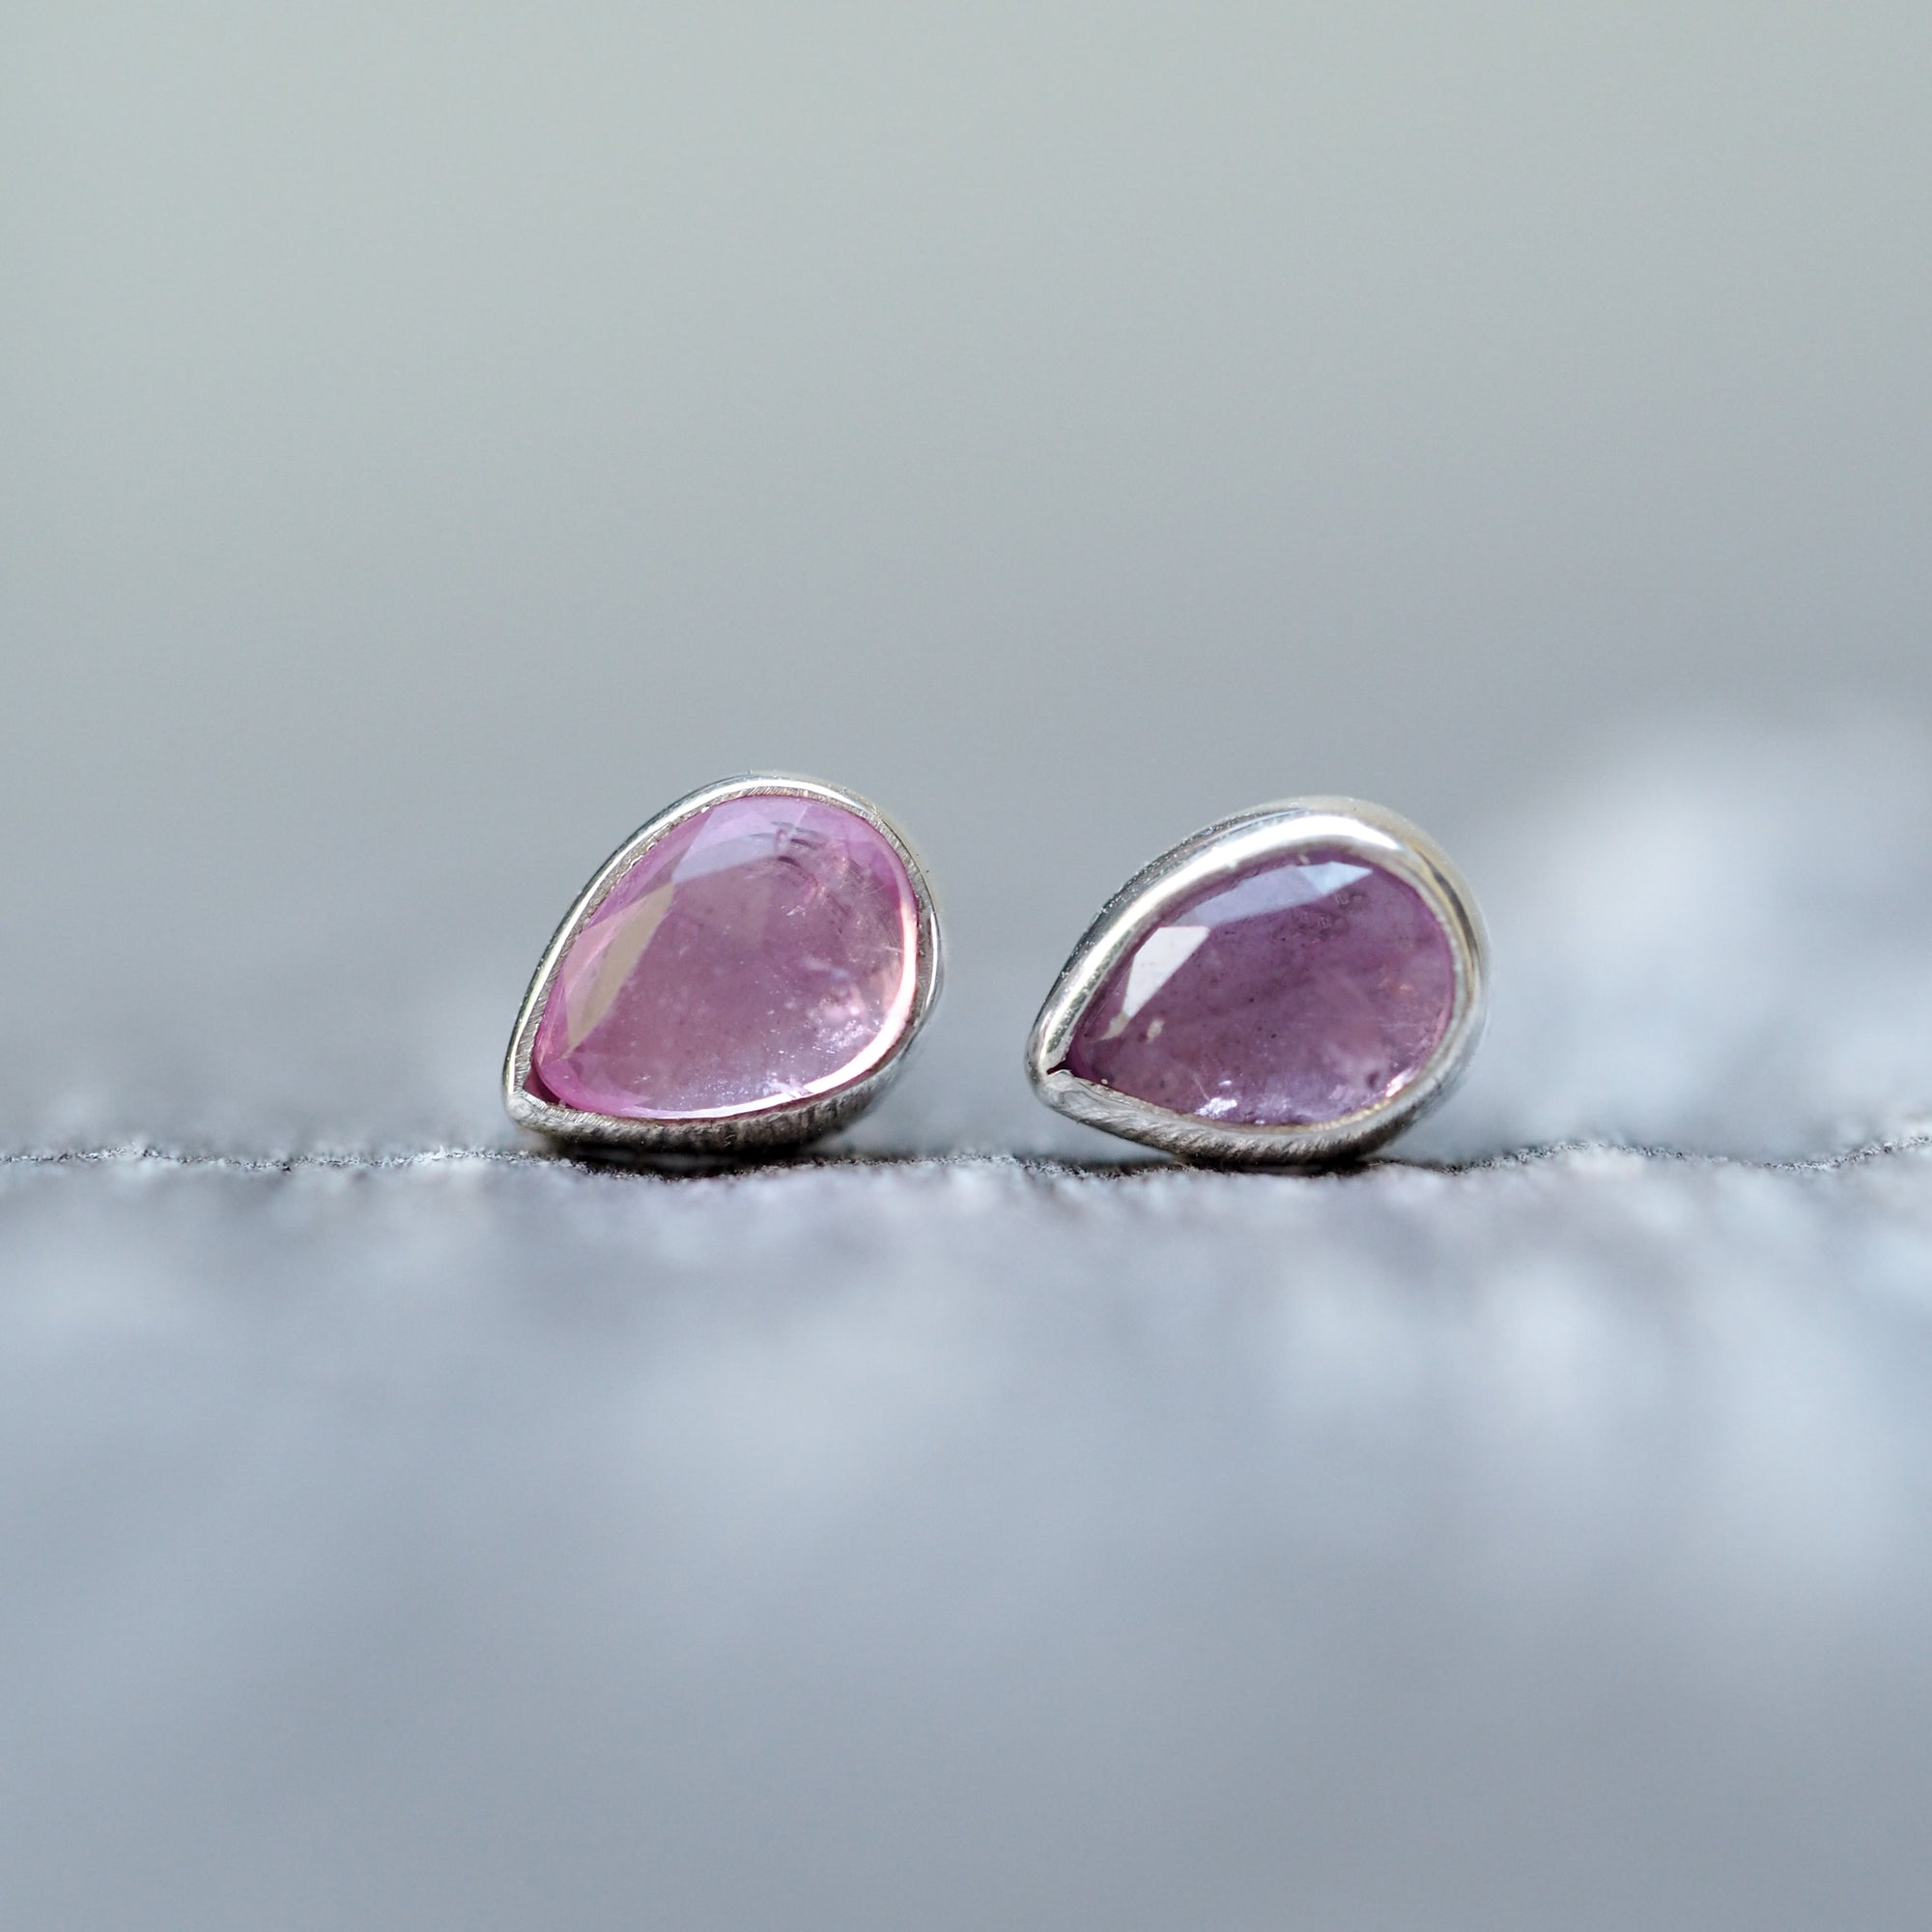 Rose Cut Pink Sapphire Earrings - Gardens of the Sun Jewelry